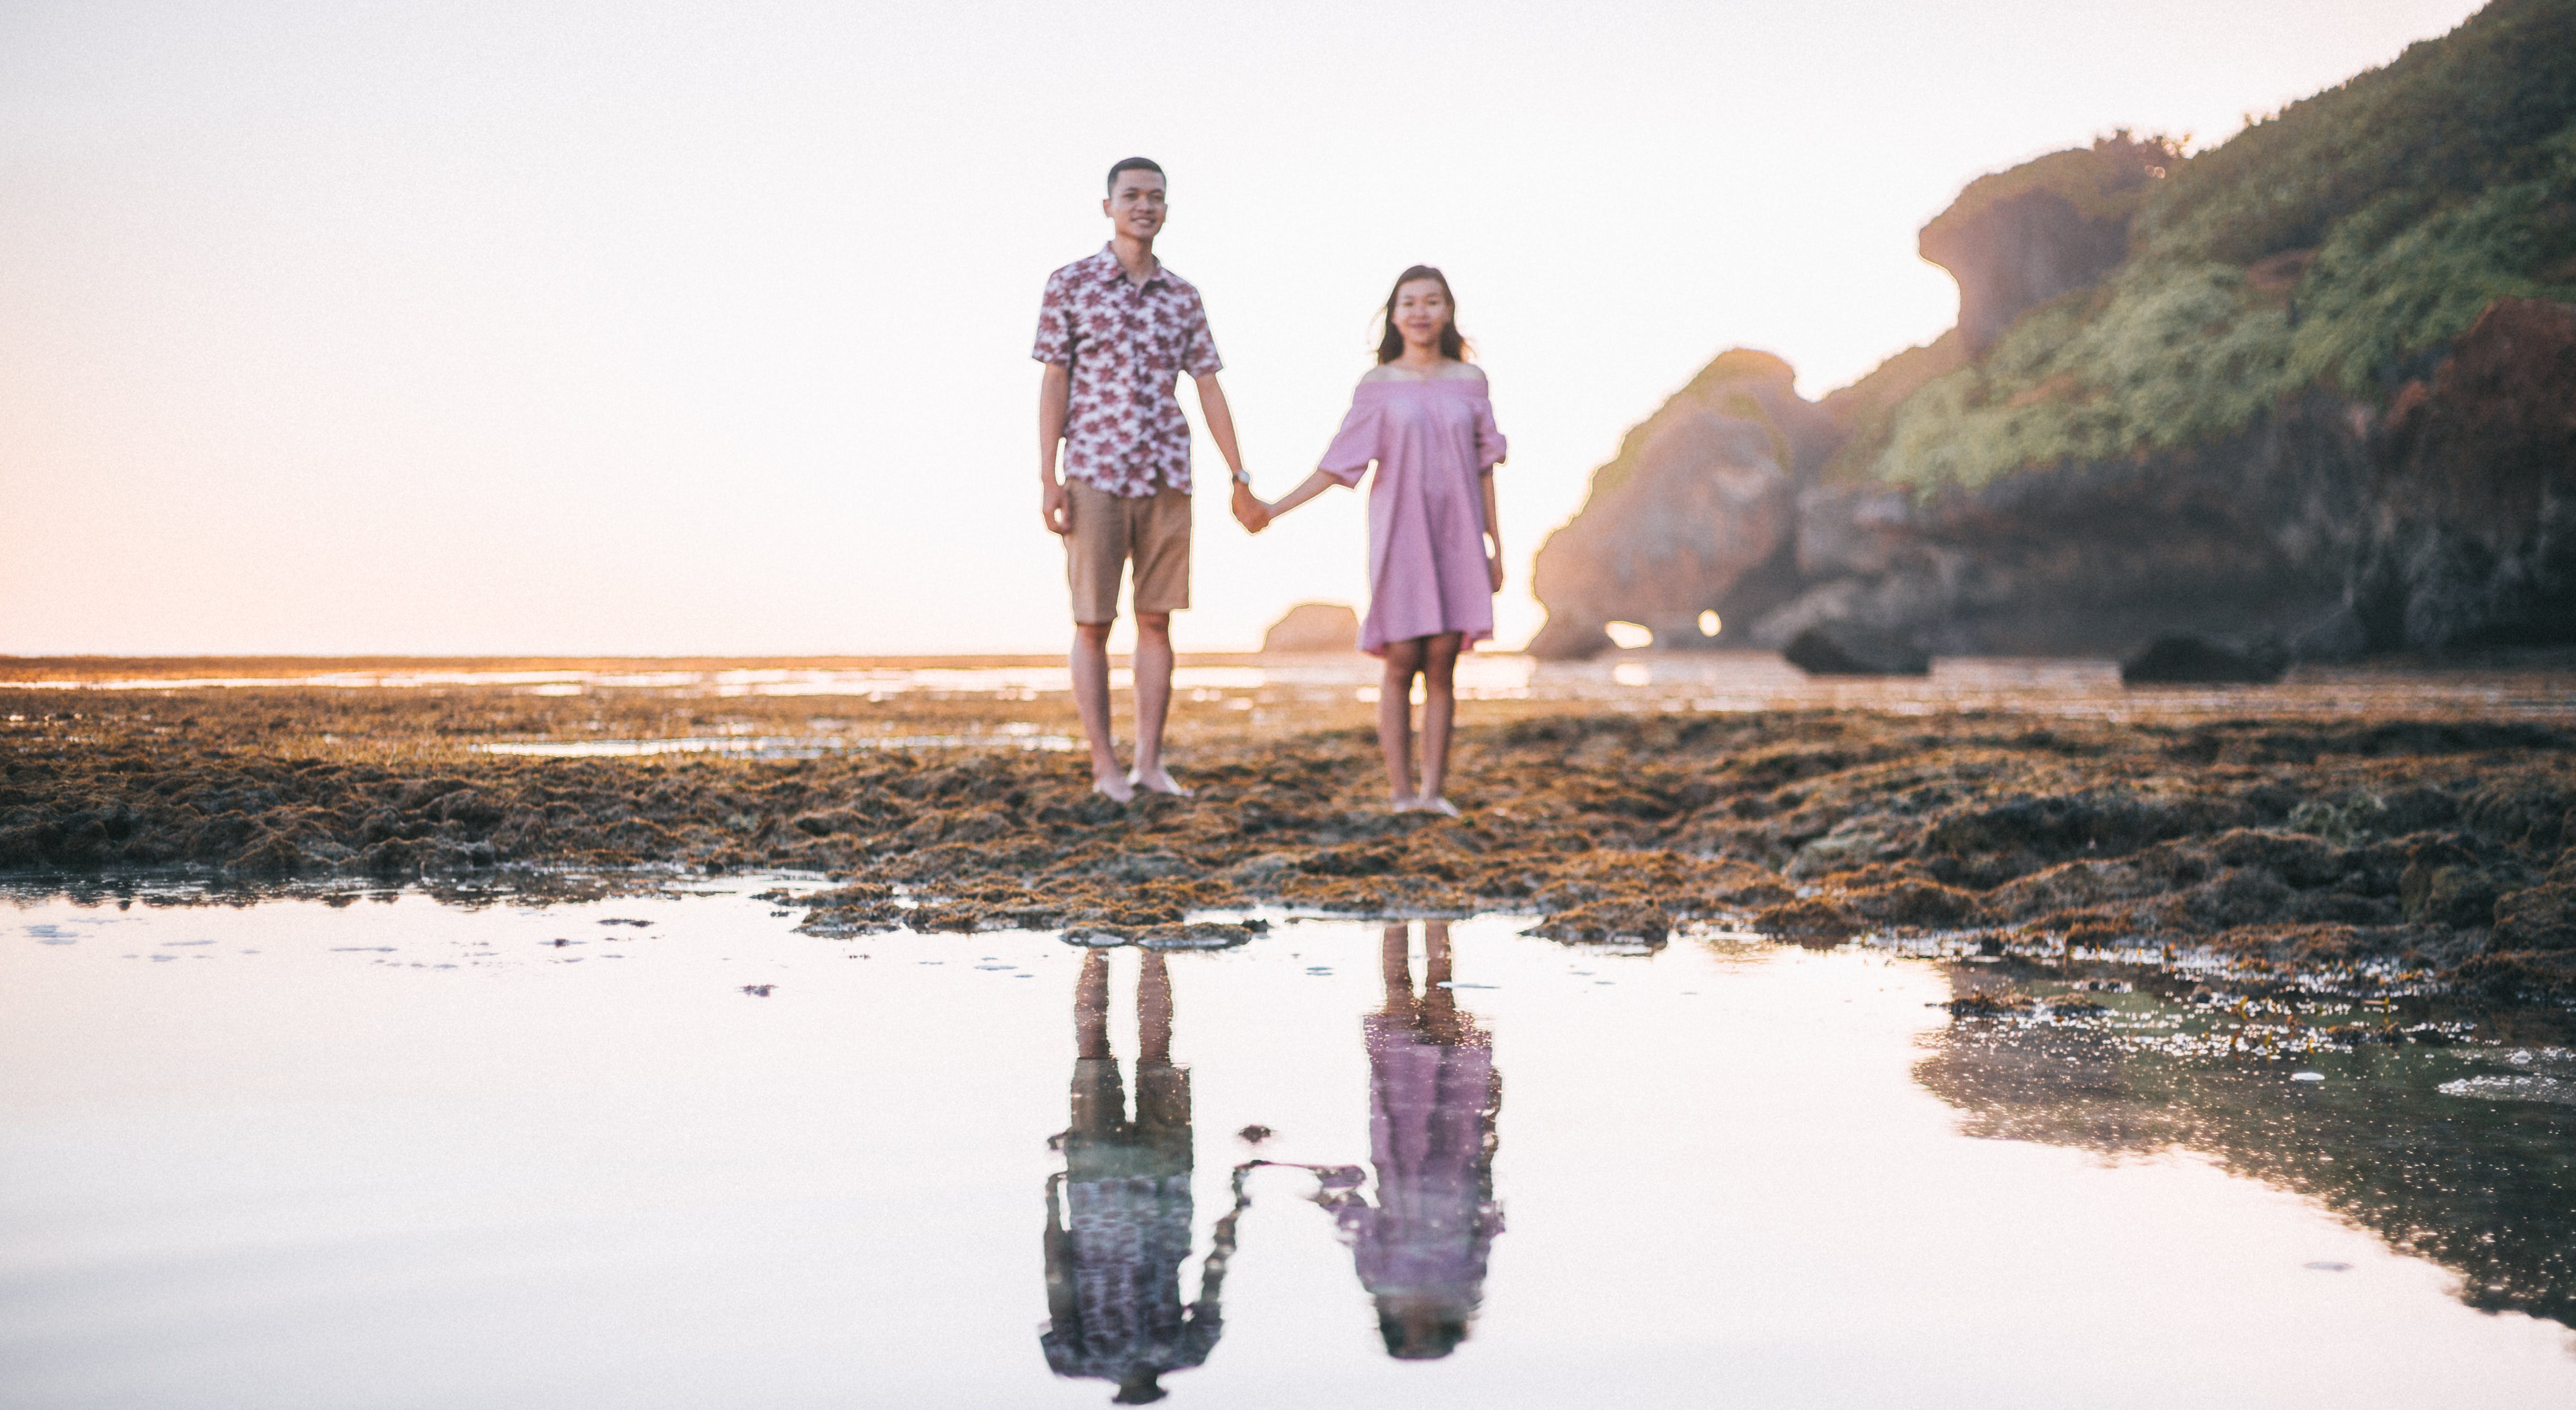 Portrait Photography of Man and Woman Holding Hands